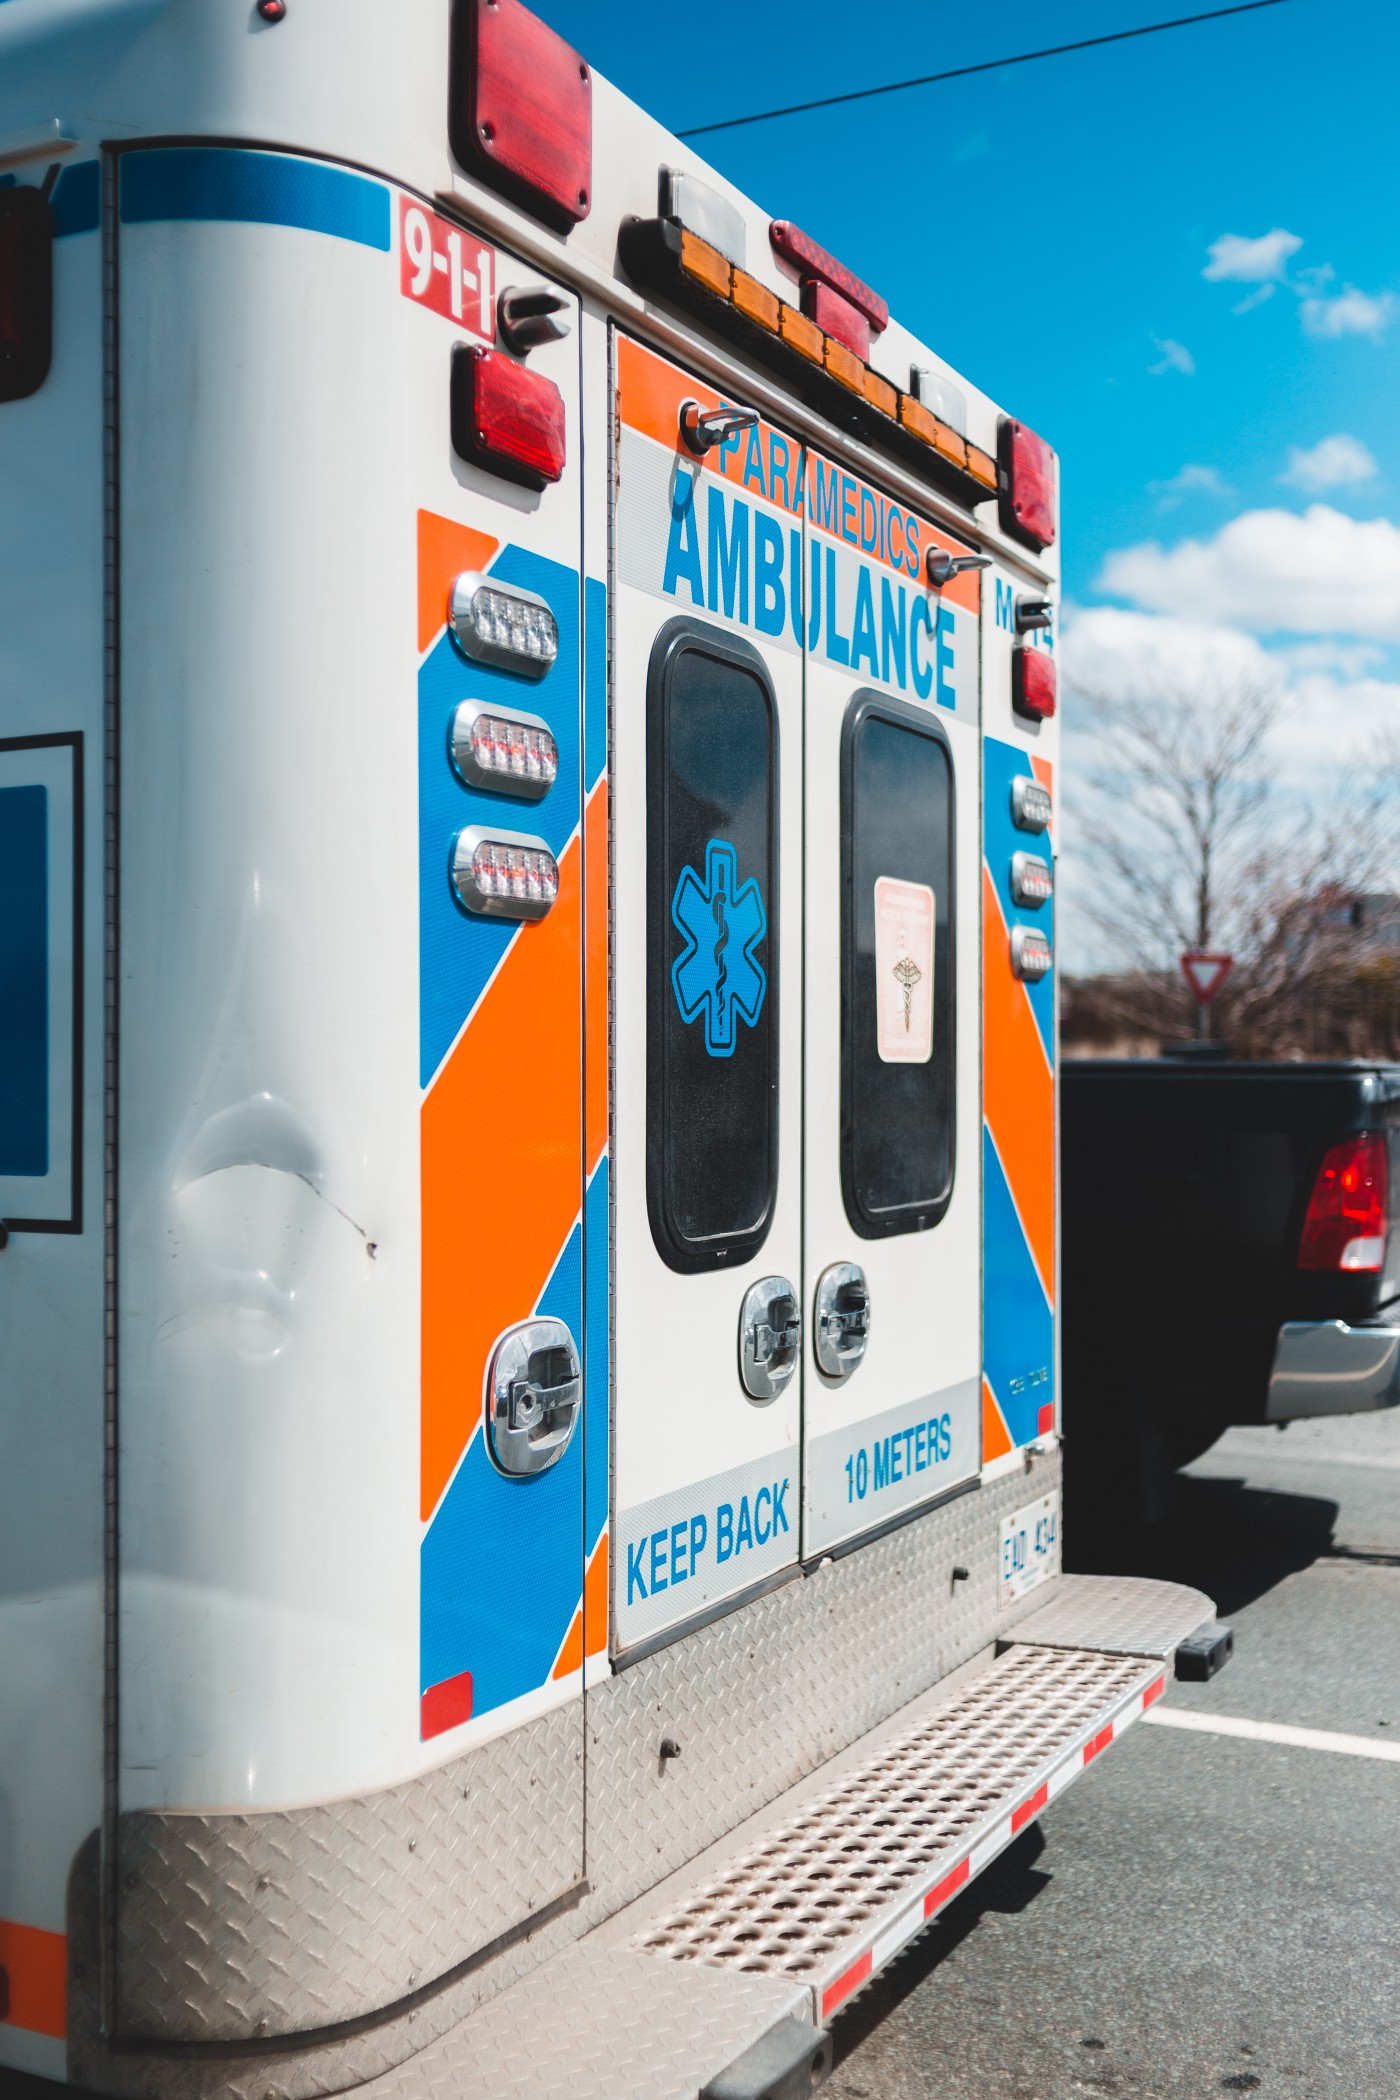 Back end of an ambulance parked on a scene, showing the EMS logo with the caduceus